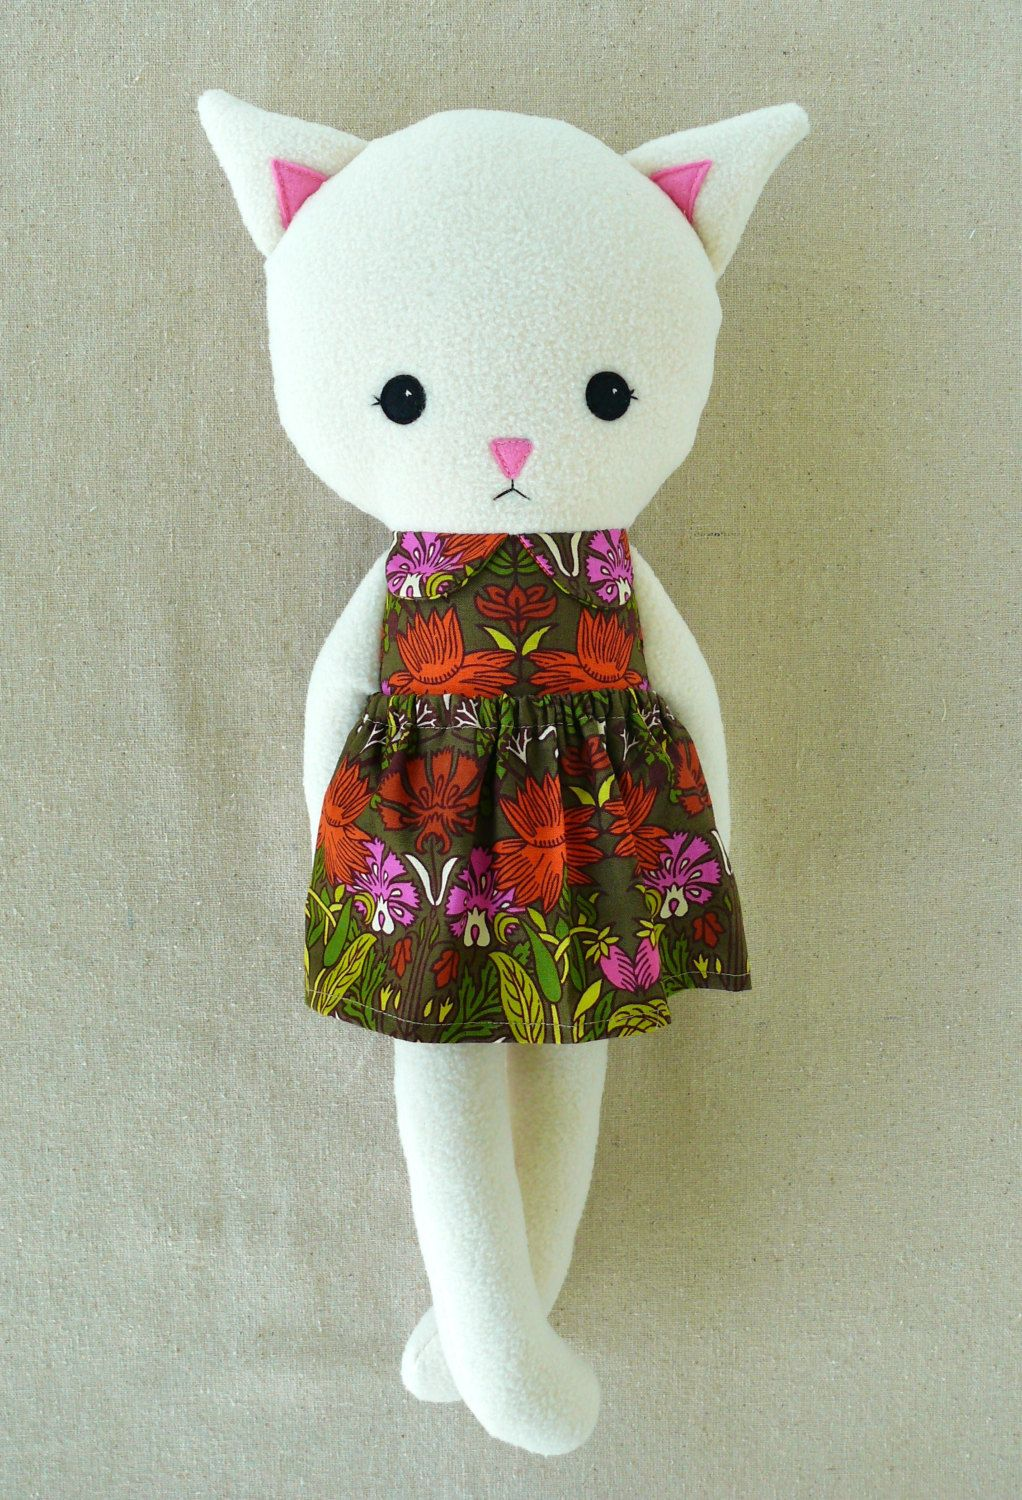 Fabric Doll Rag Doll Cat Doll in Floral Dress | LoVe FoR ...